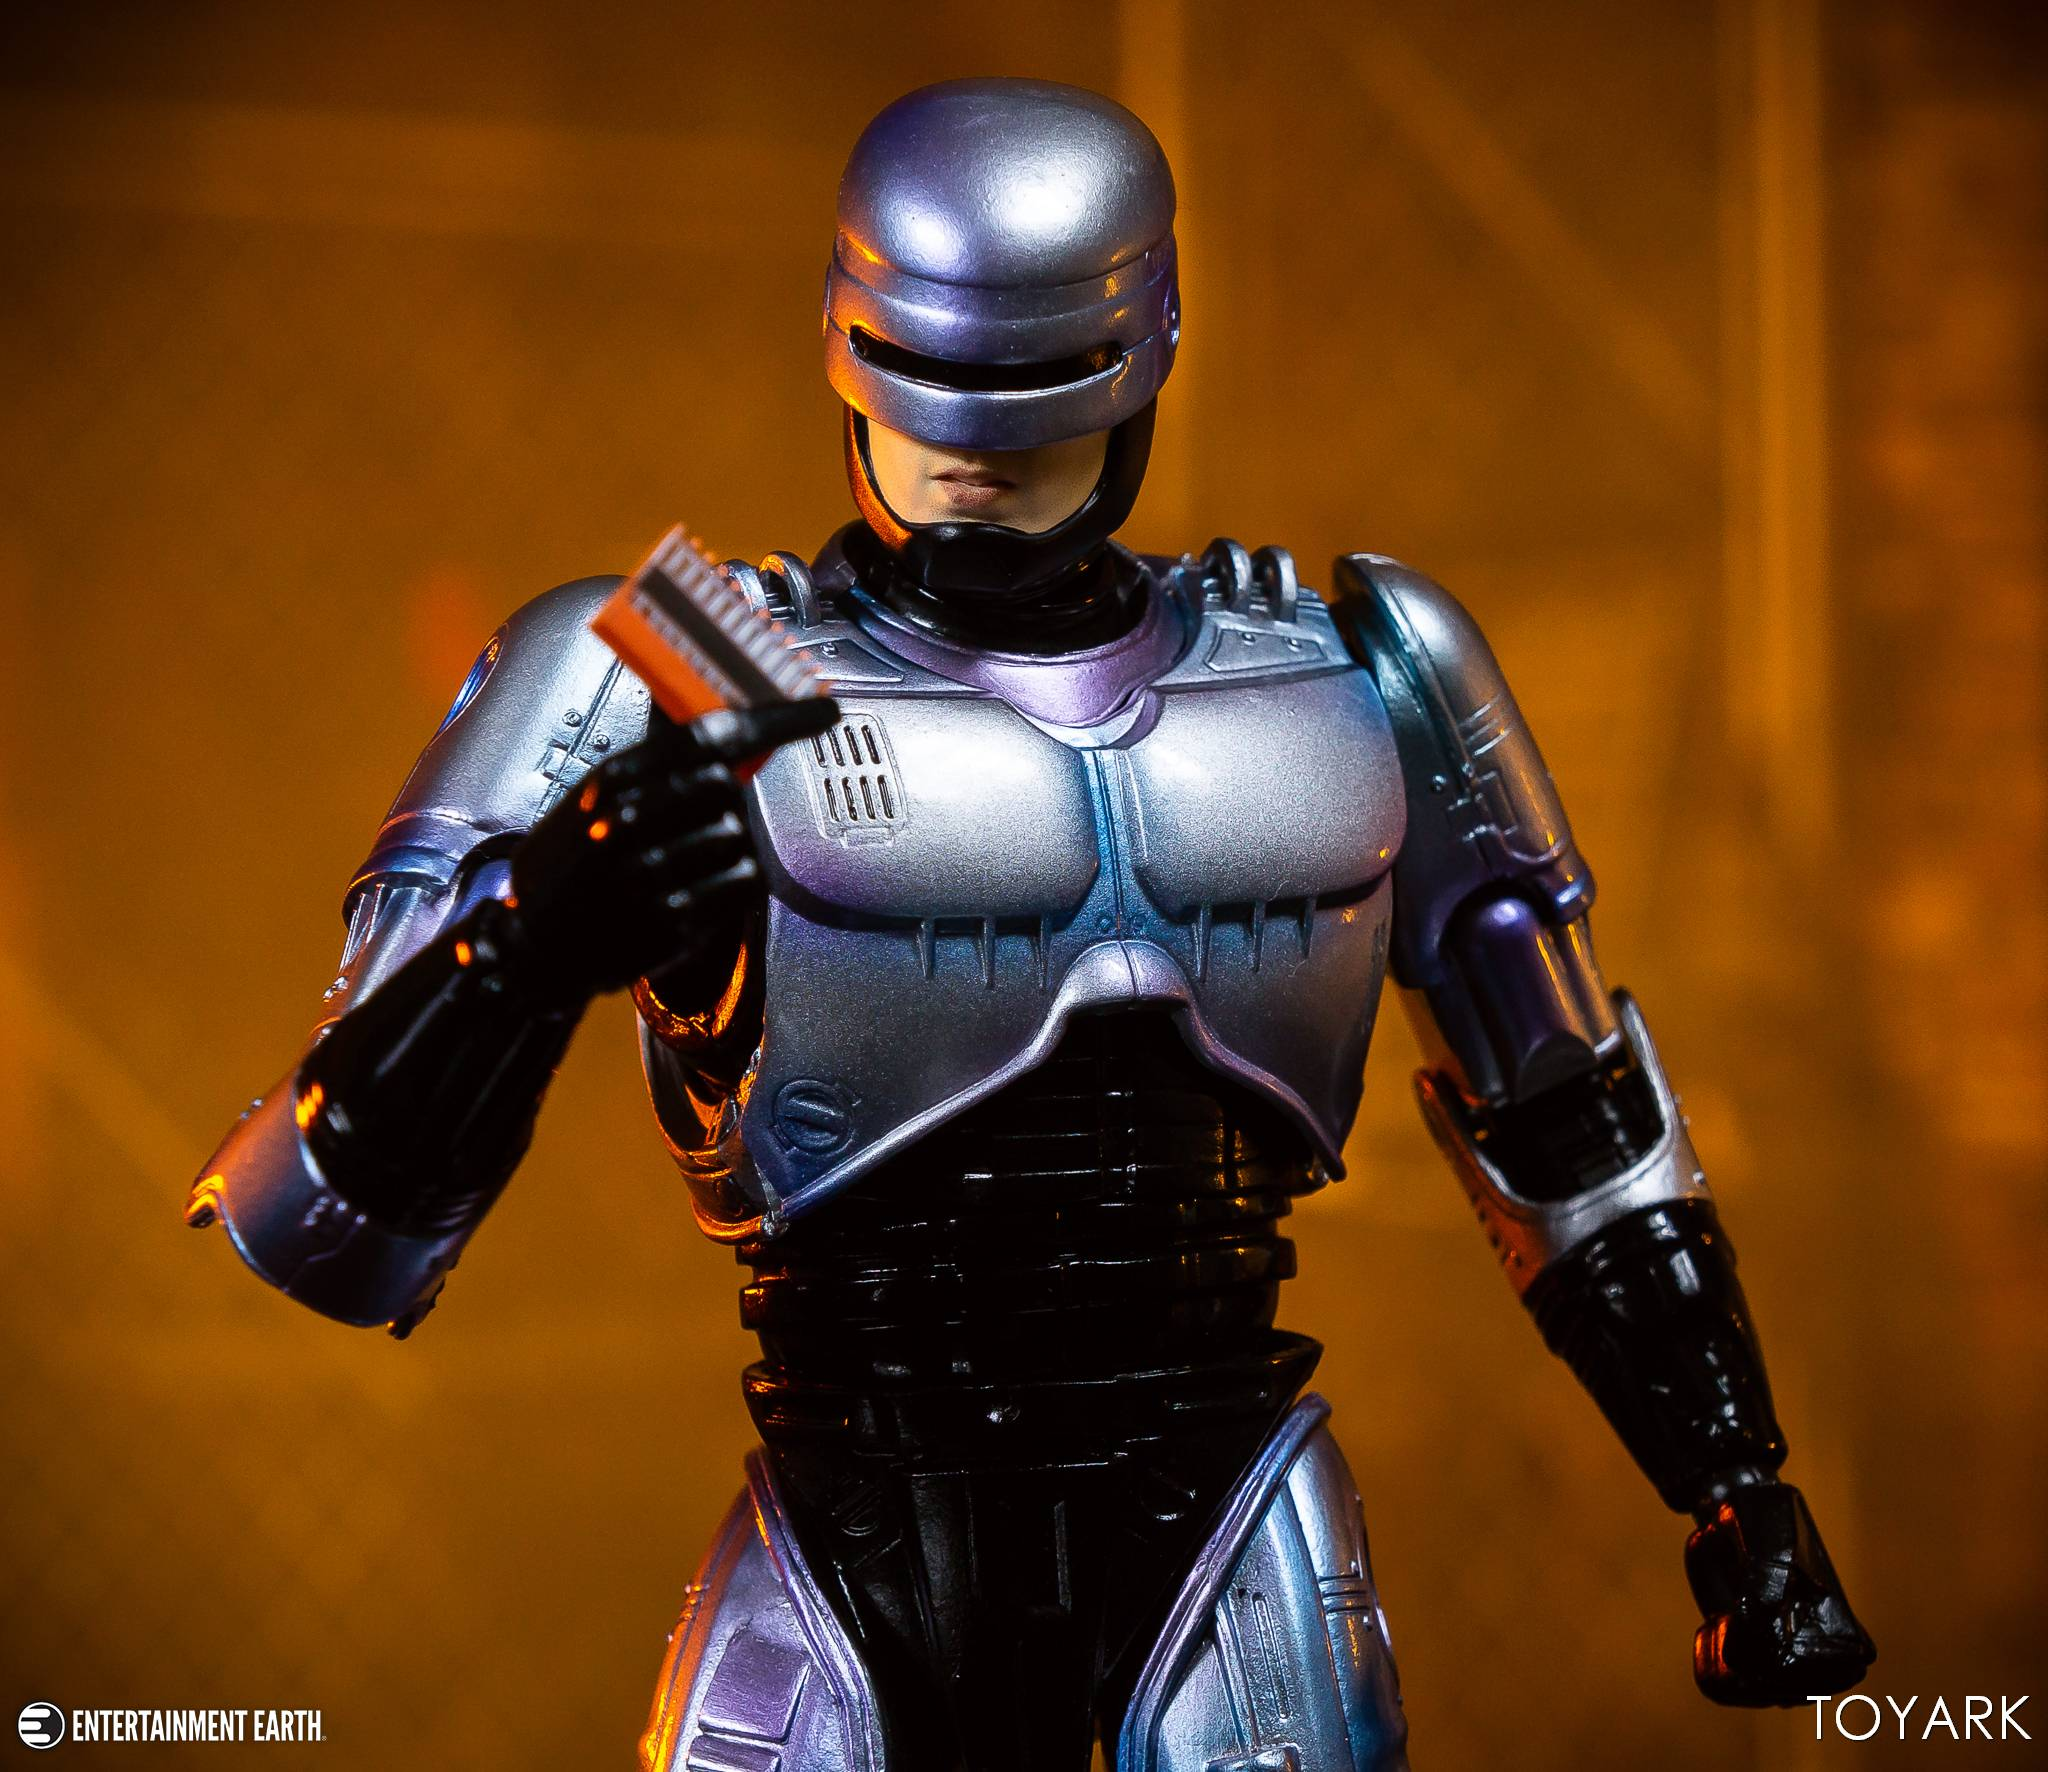 https://news.toyark.com/wp-content/uploads/sites/4/2019/05/MAFEX-Robocop-2-Gallery-020.jpg